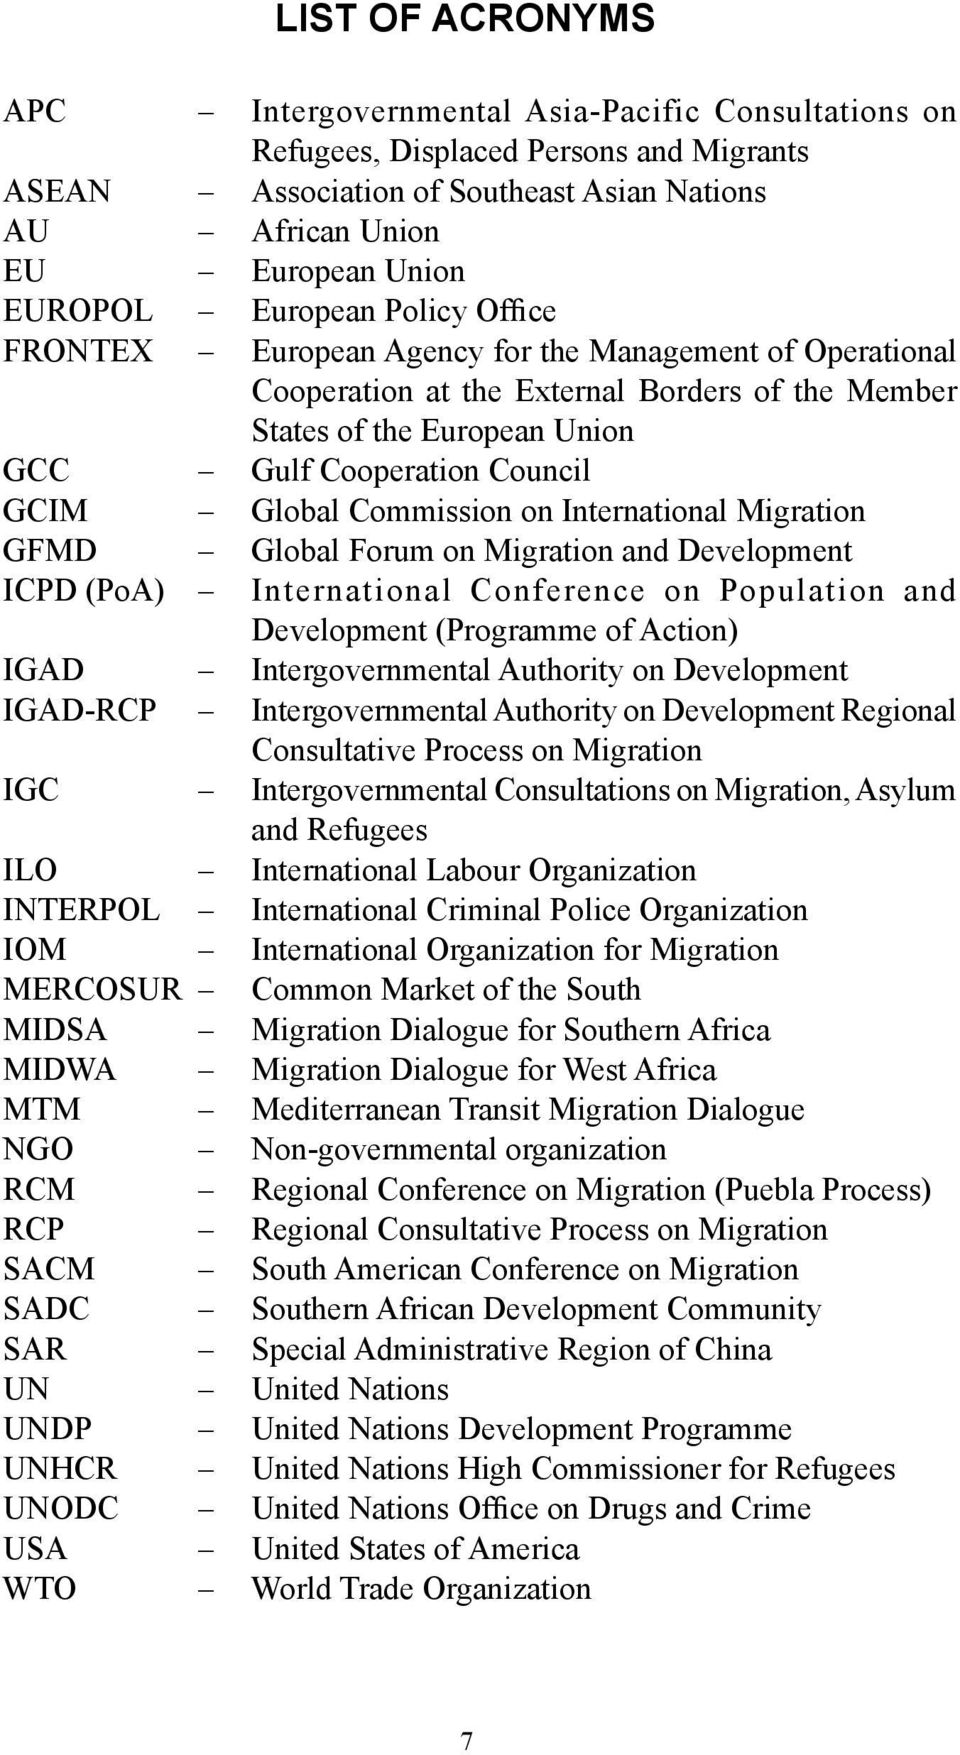 Global Commission on International Migration GFMD Global Forum on Migration and Development ICPD (PoA) International Conference on Population and Development (Programme of Action) IGAD